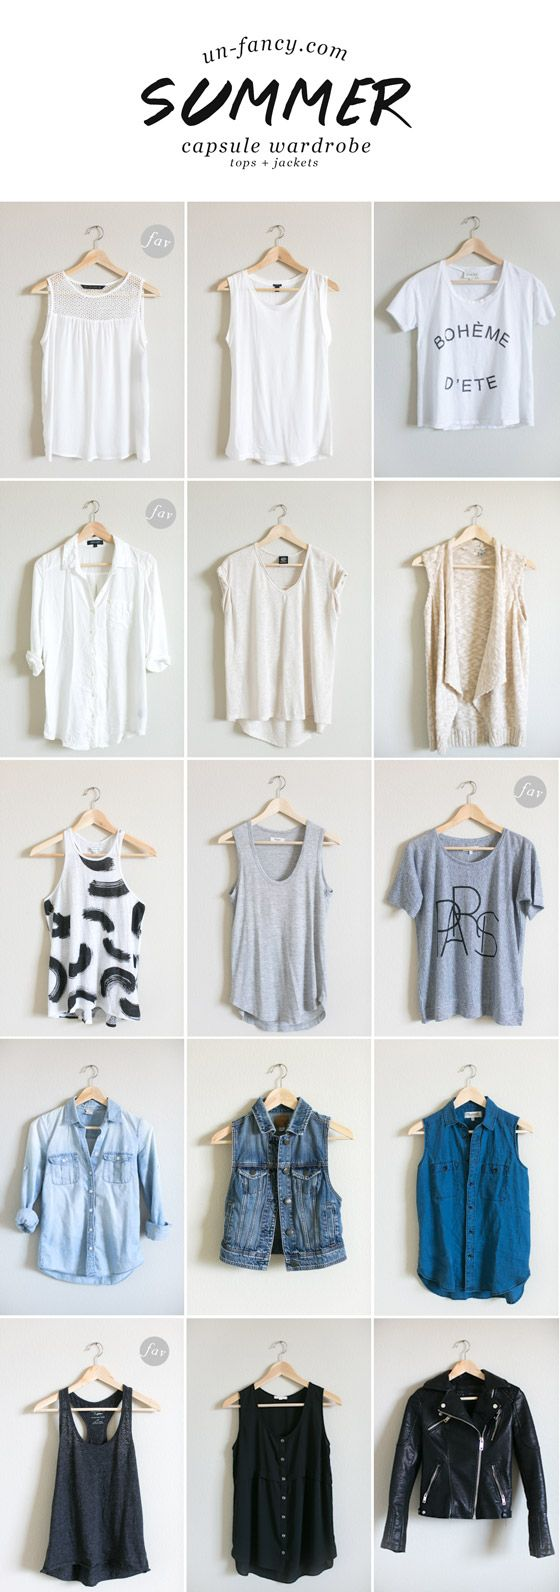 tops + jackets // my capsule wardrobe // summer 2014